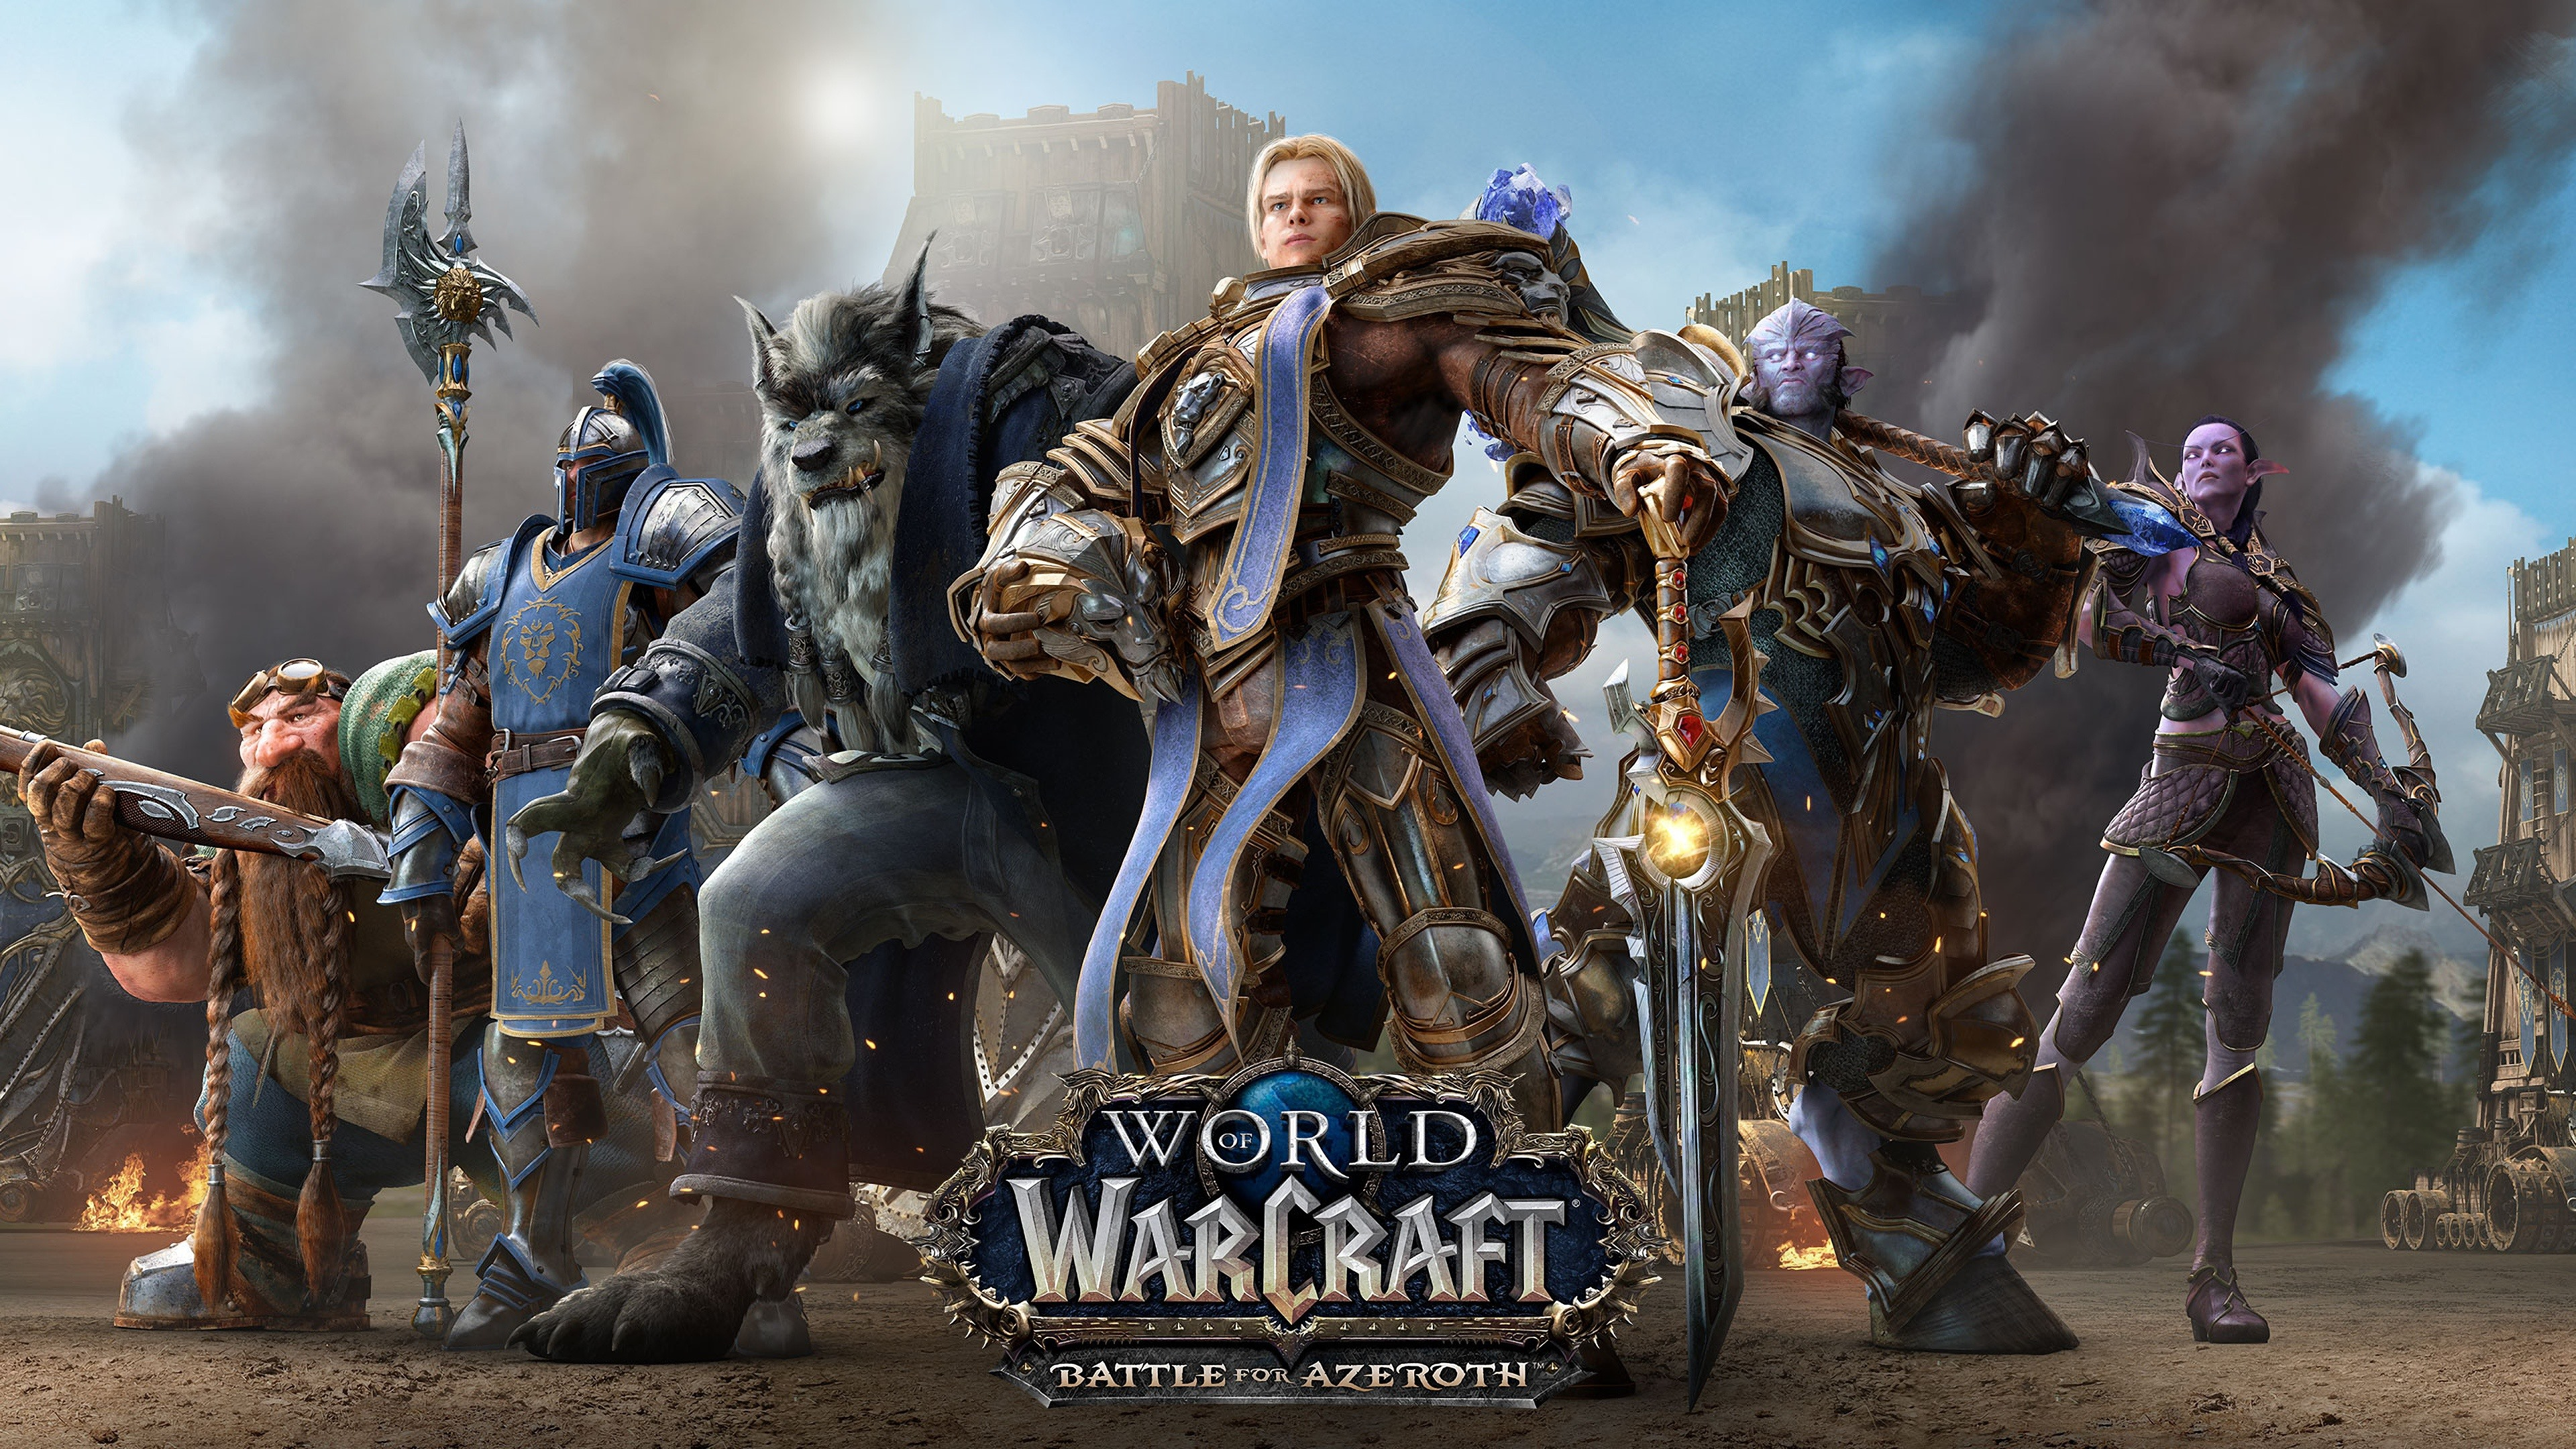 Wallpaper World Of Warcraft Battle For Azeroth Online Games